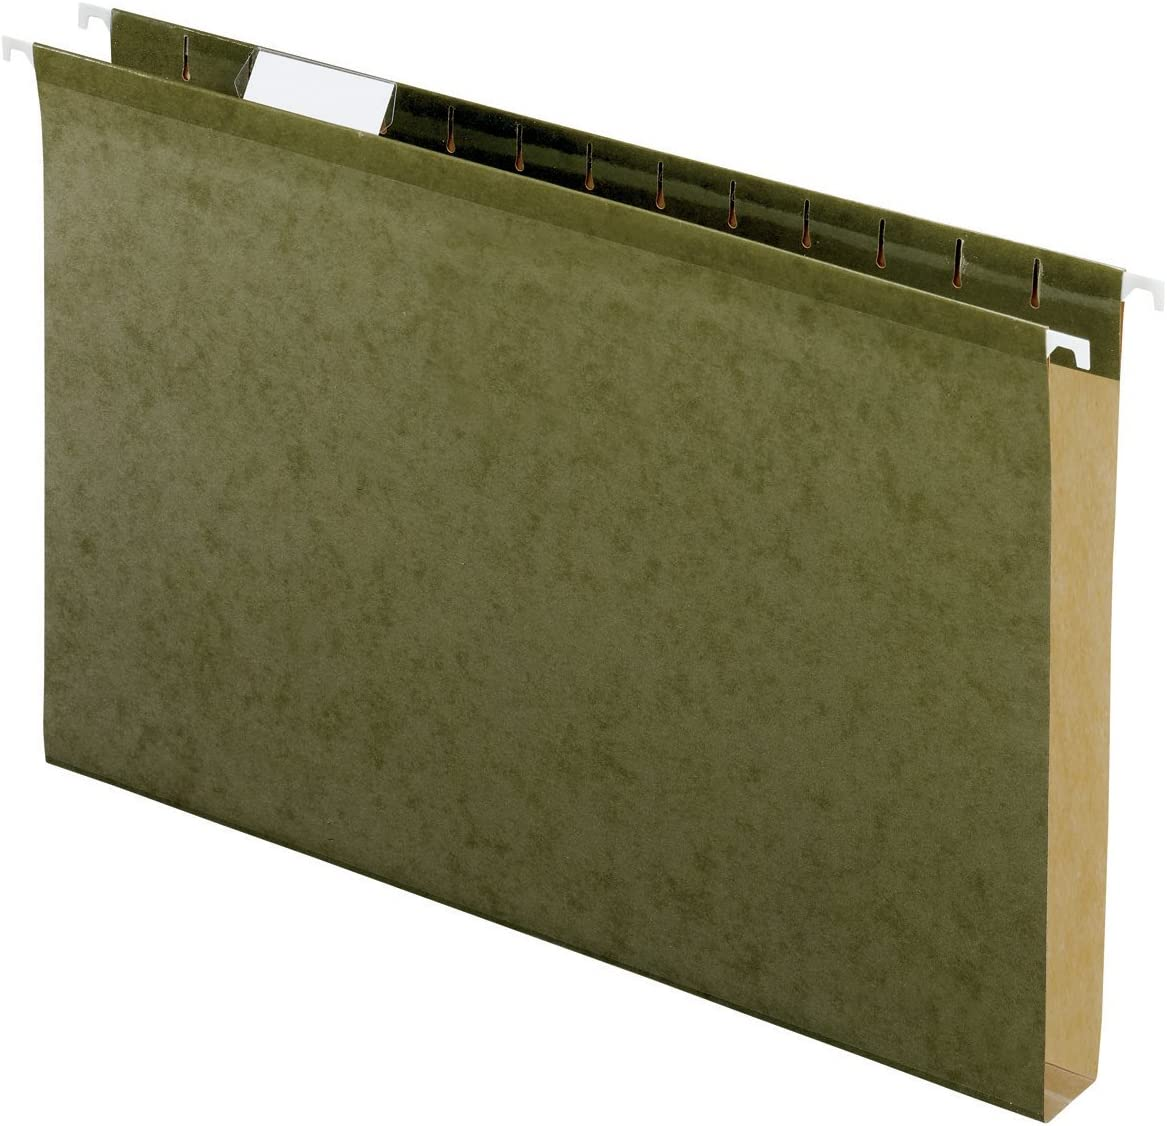 """Pendaflex 04153X1 Reinforced 1"""" Extra Capacity Hanging Folders, Legal, Standard Green, Box of 25 (4153X1) : Hanging File Folders : Office Products"""